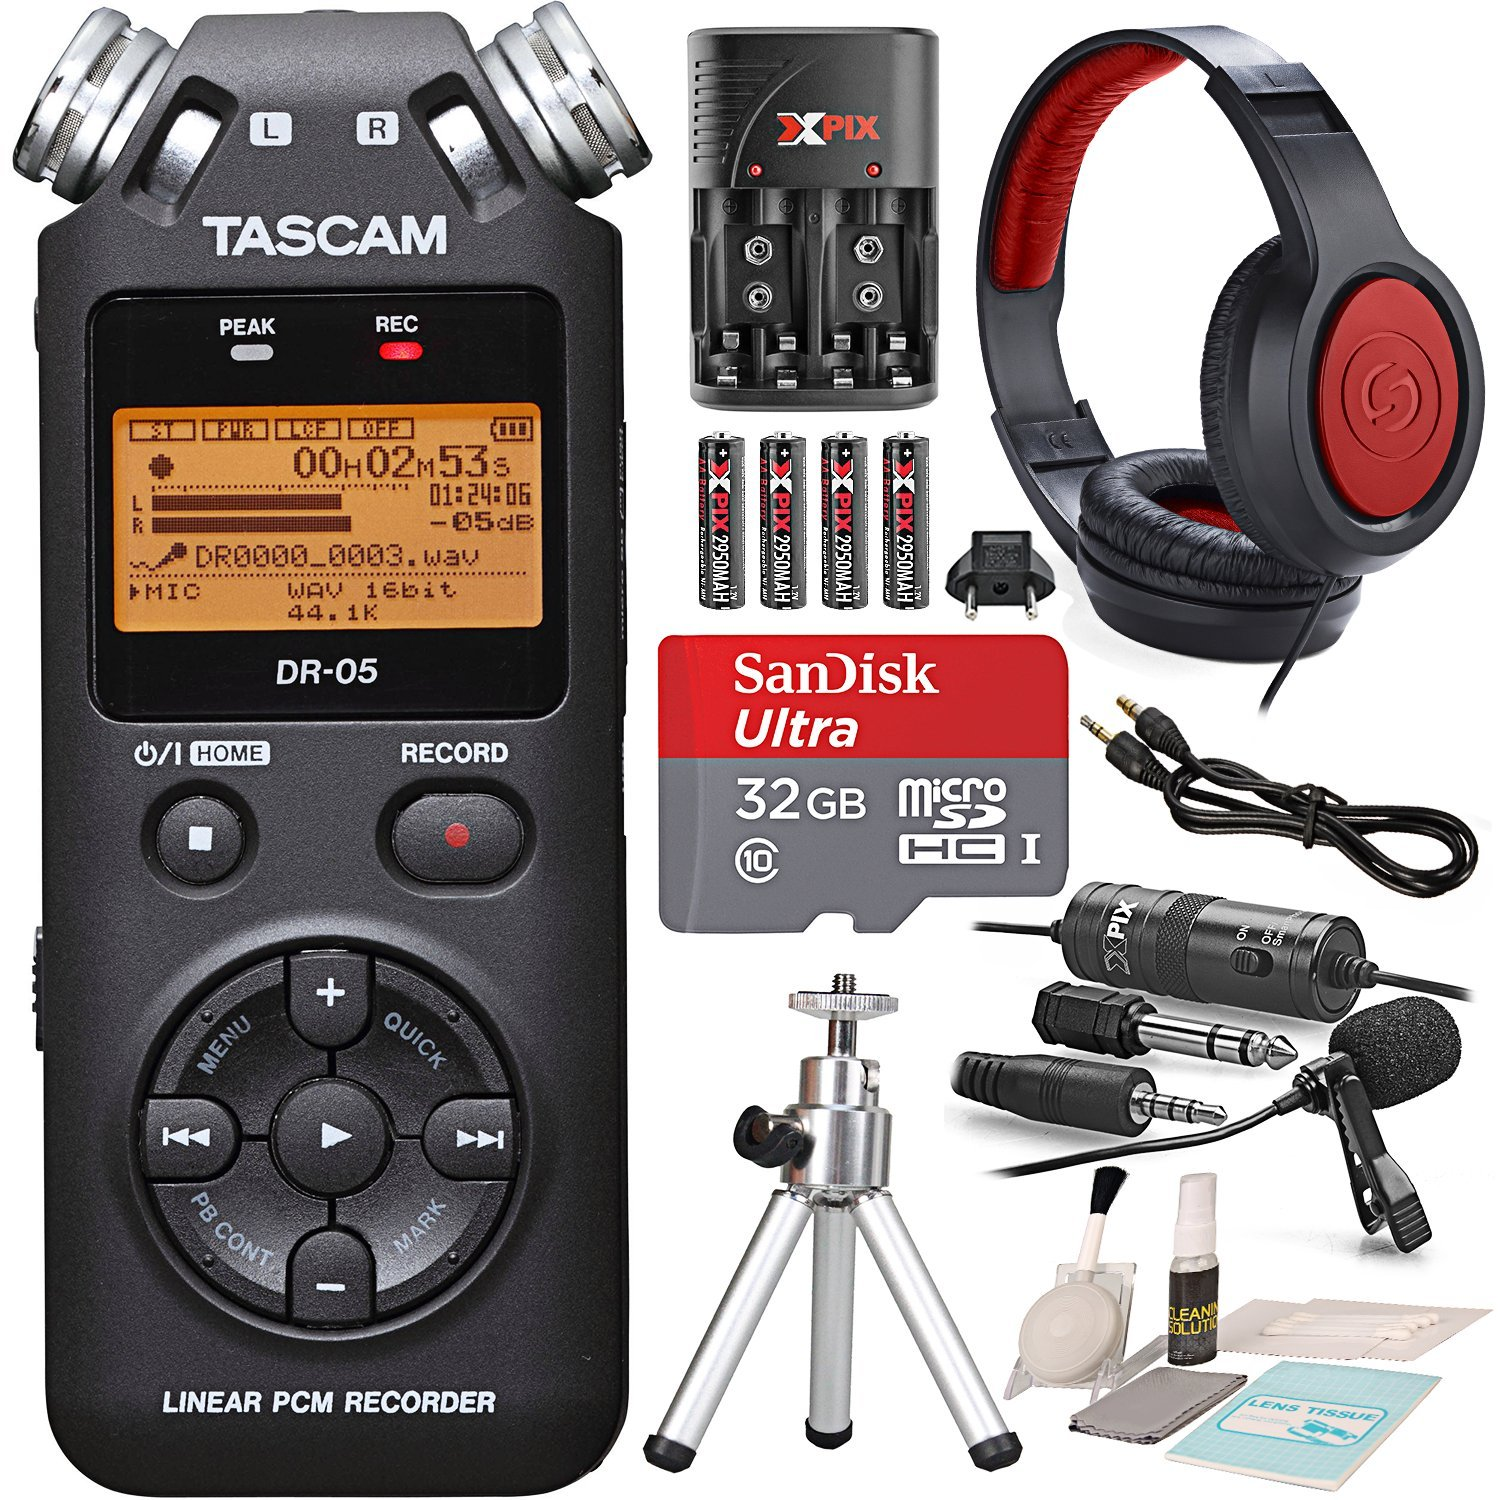 Tascam DR-05 (Version 2) Portable Handheld Digital Audio Recorder (Black) with Platnium accessory bundle Tassscan